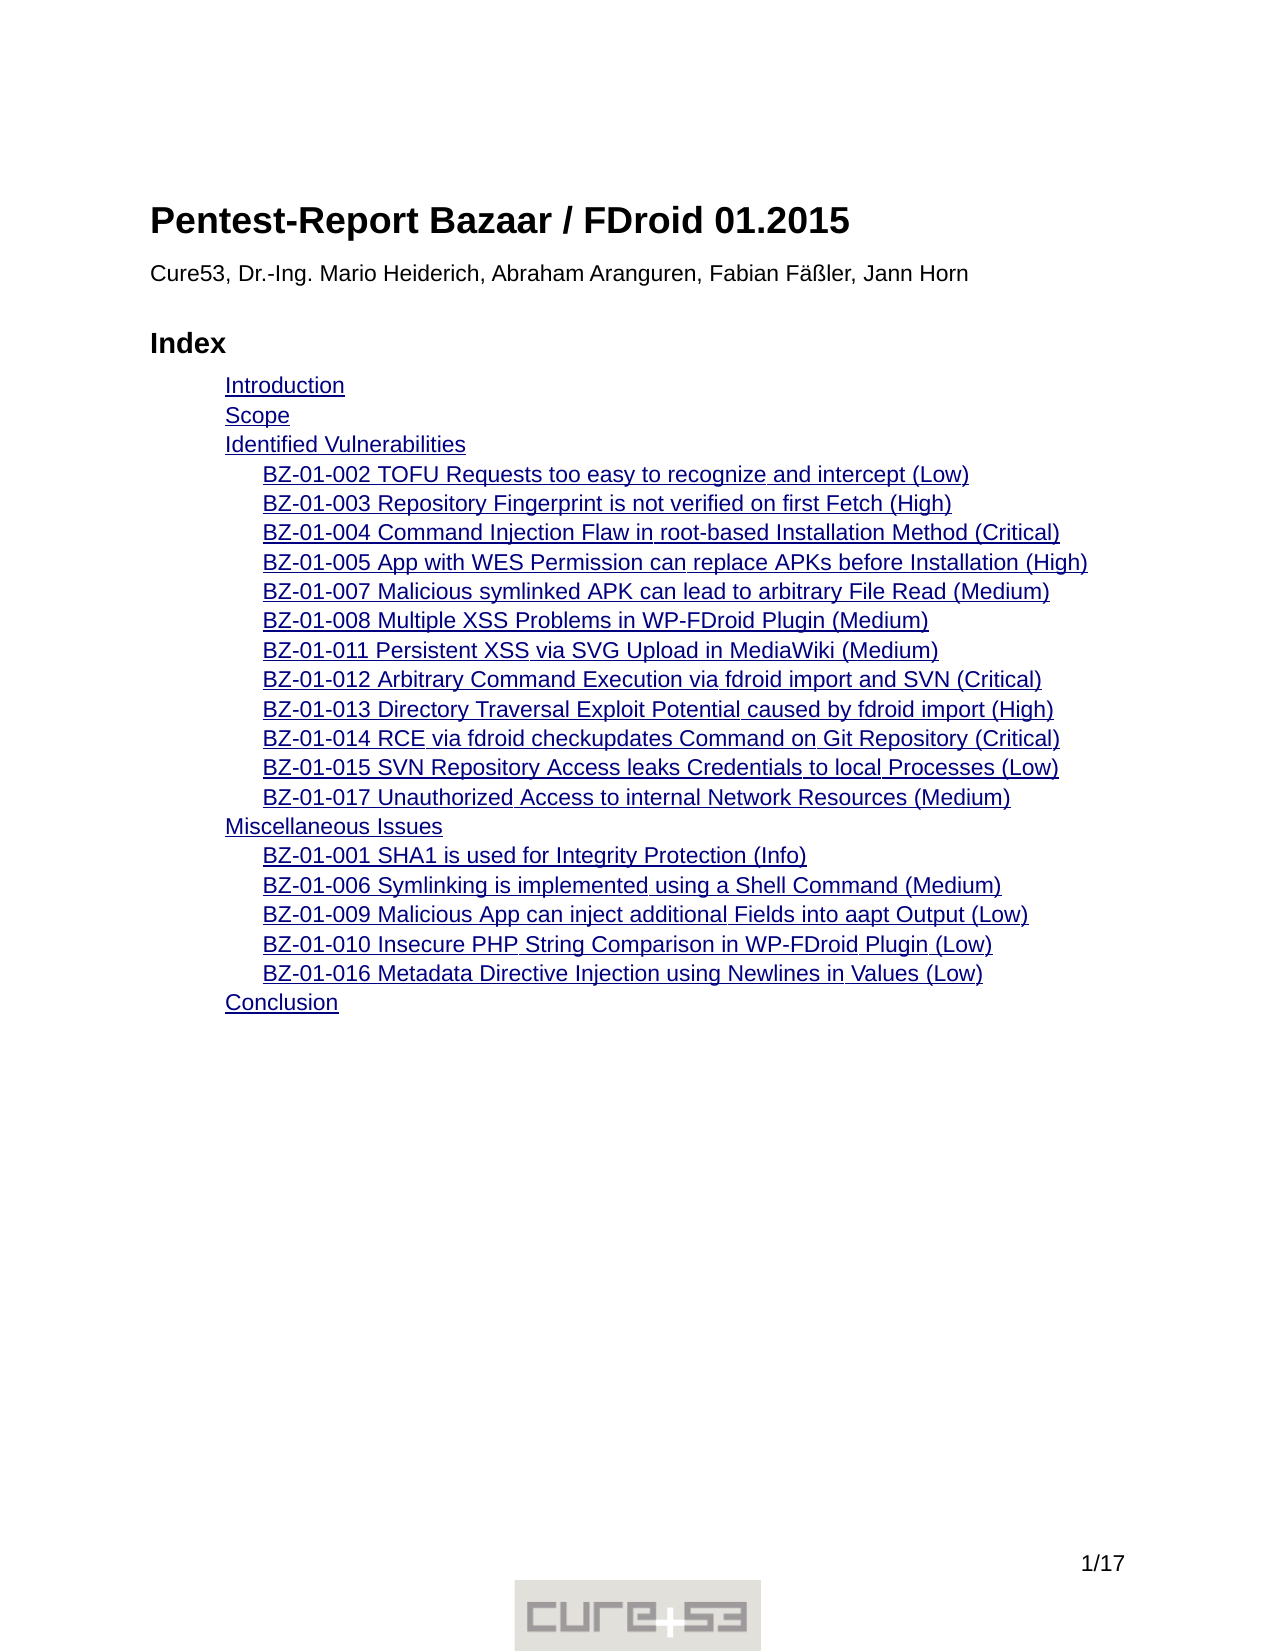 First page of the 'pentest-report fdroid' PDF